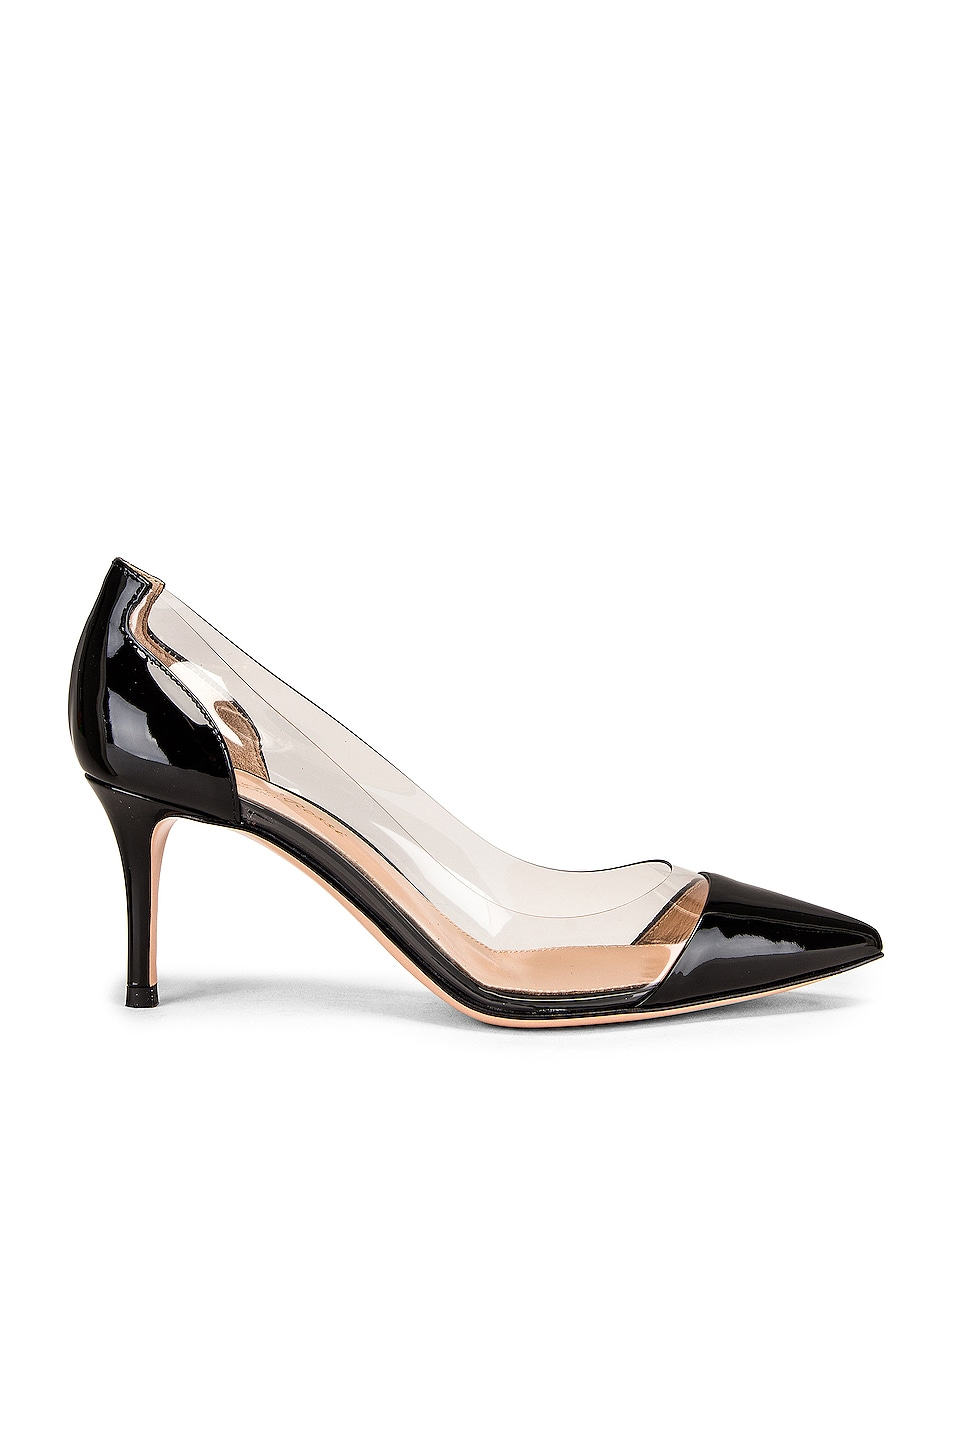 Image 1 of Gianvito Rossi Plexi Heels in Black & Transparent